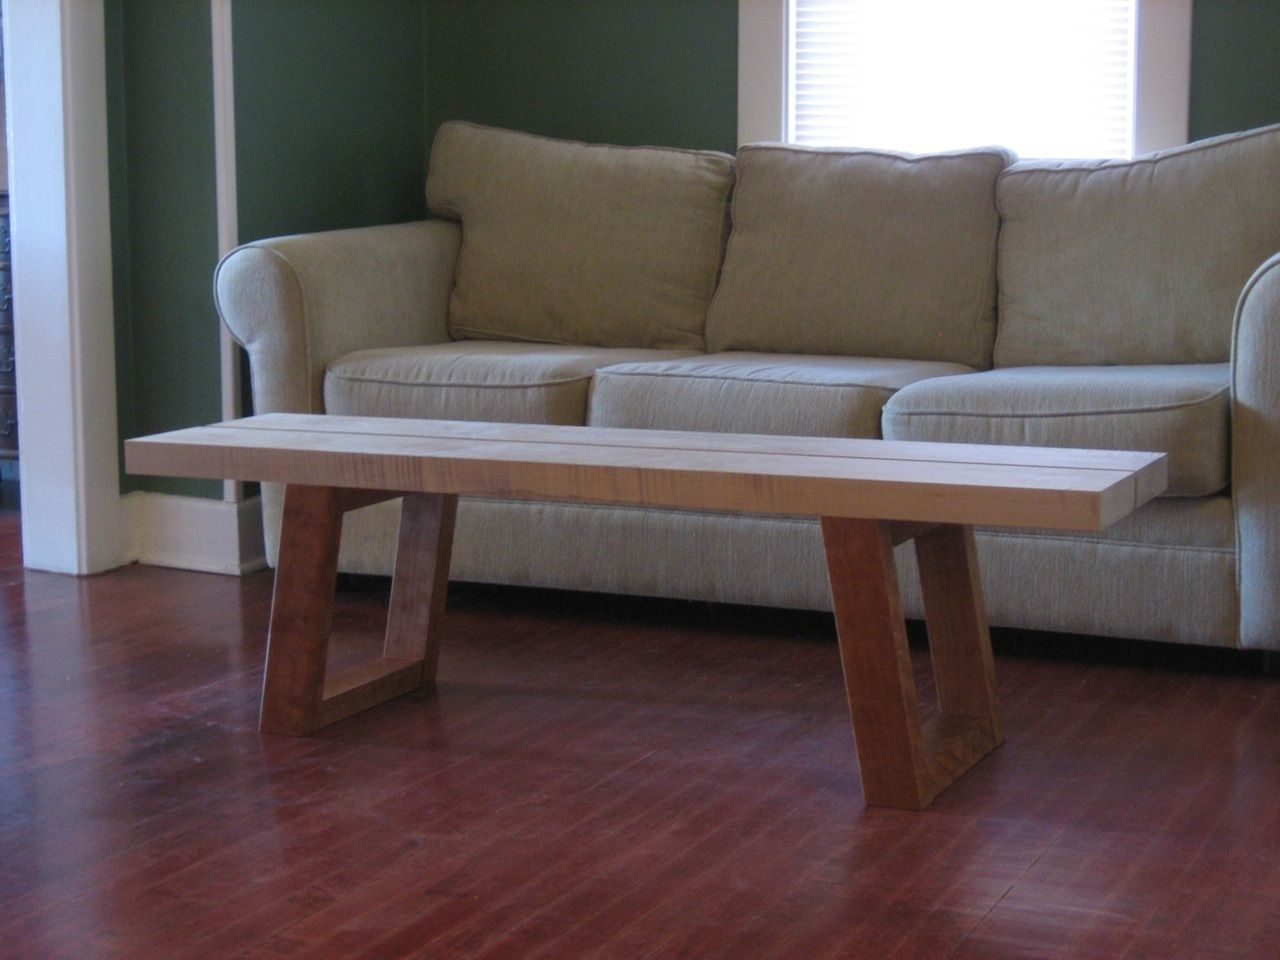 Murphy Coffee Table.Hand Crafted Coffee Table Bench By Joseph Murphy Furniture Maker